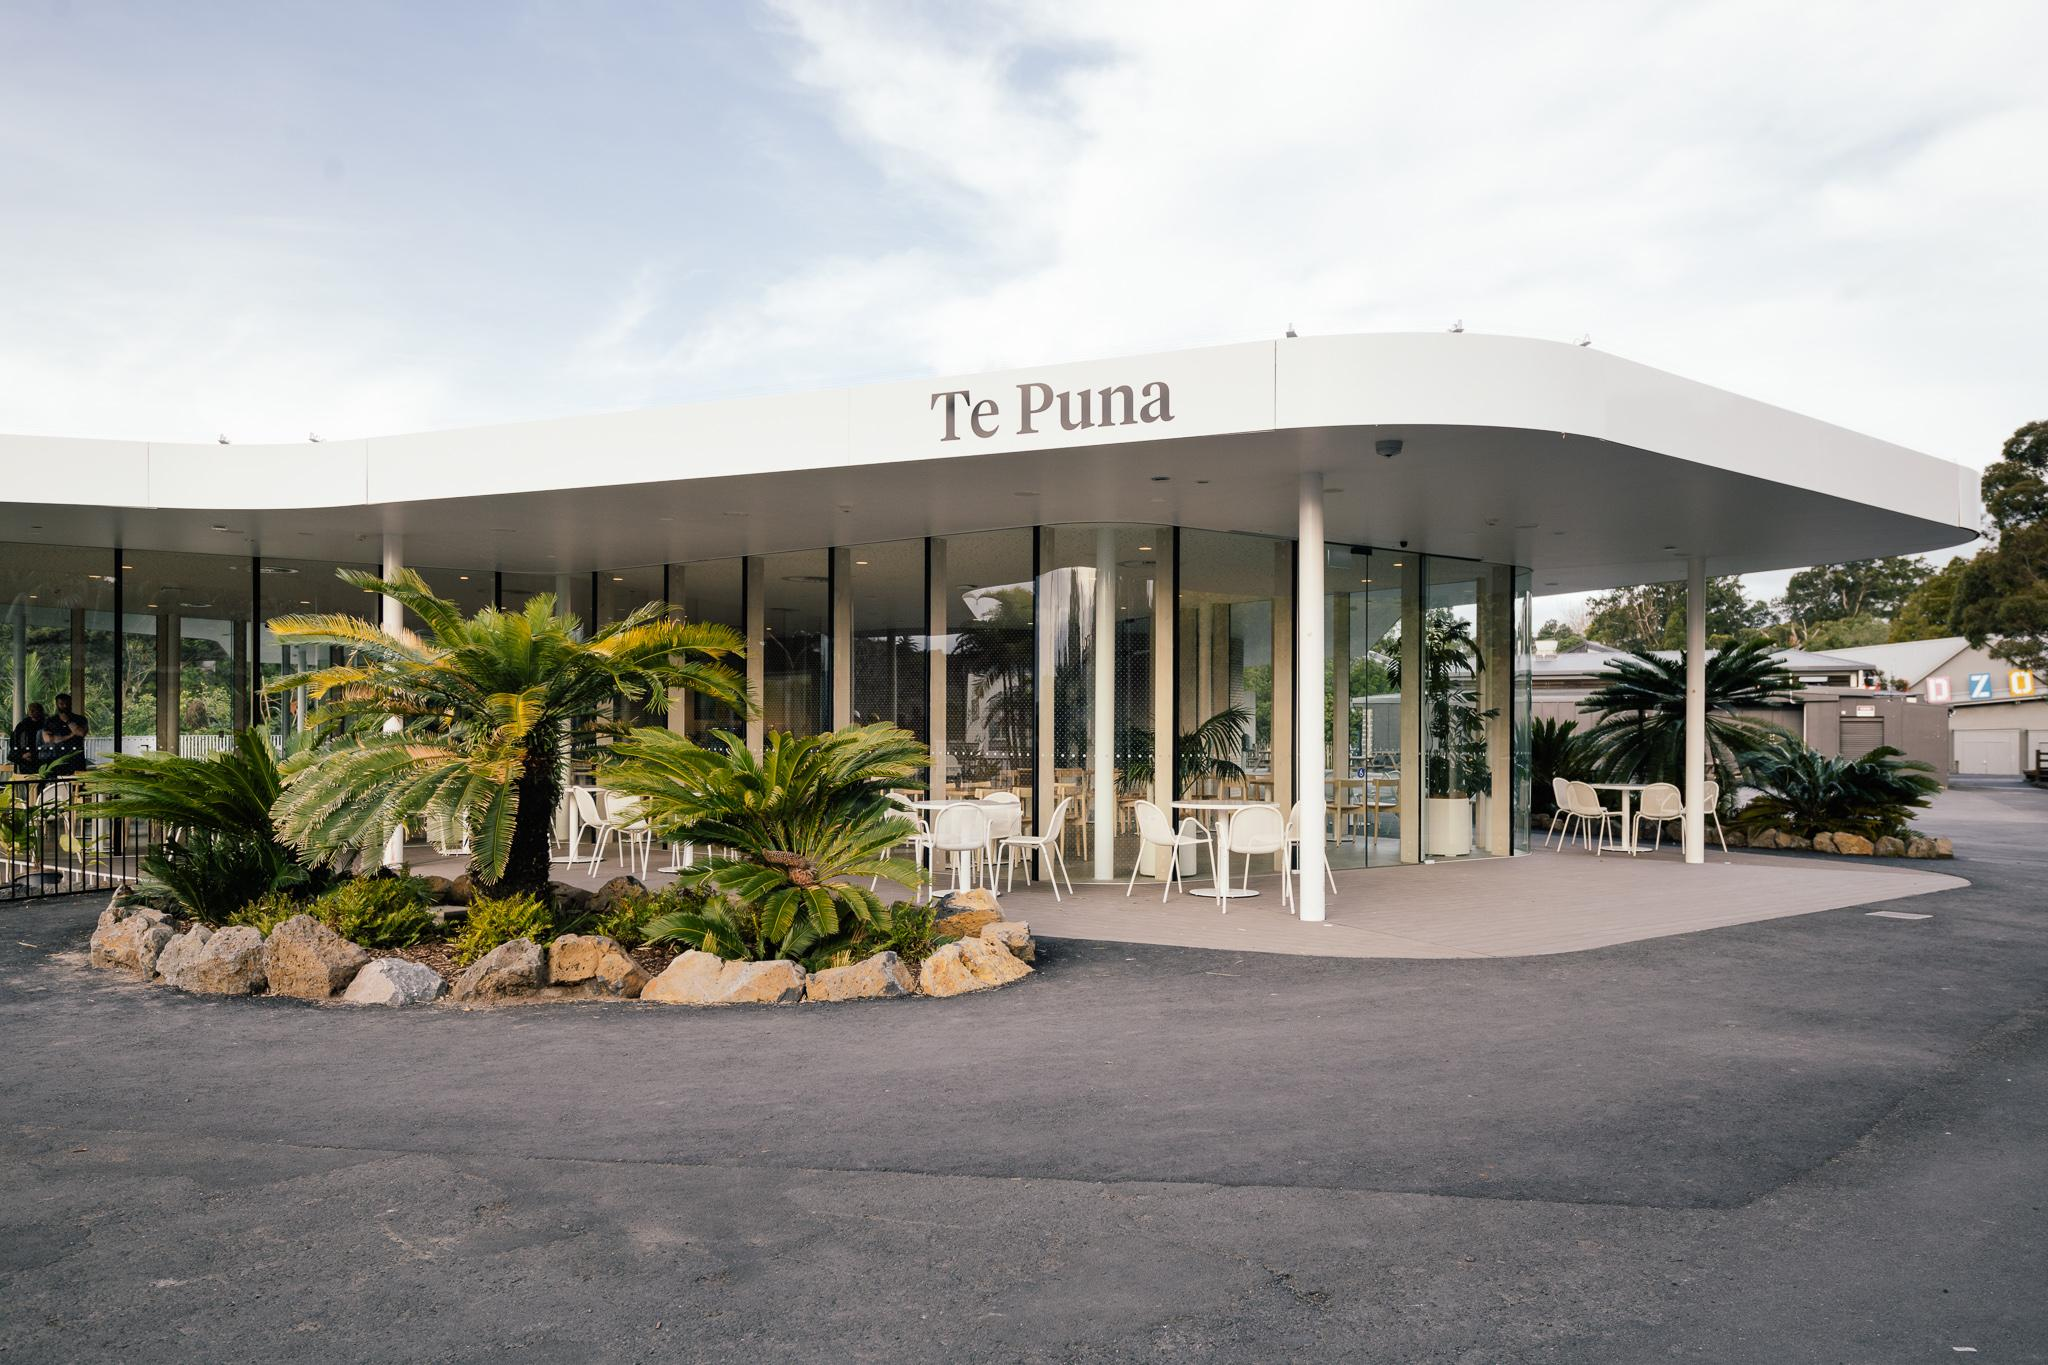 https://rfacdn.nz/conventions/assets/media/auckland-zoo-te-puna-exterior-3.jpg